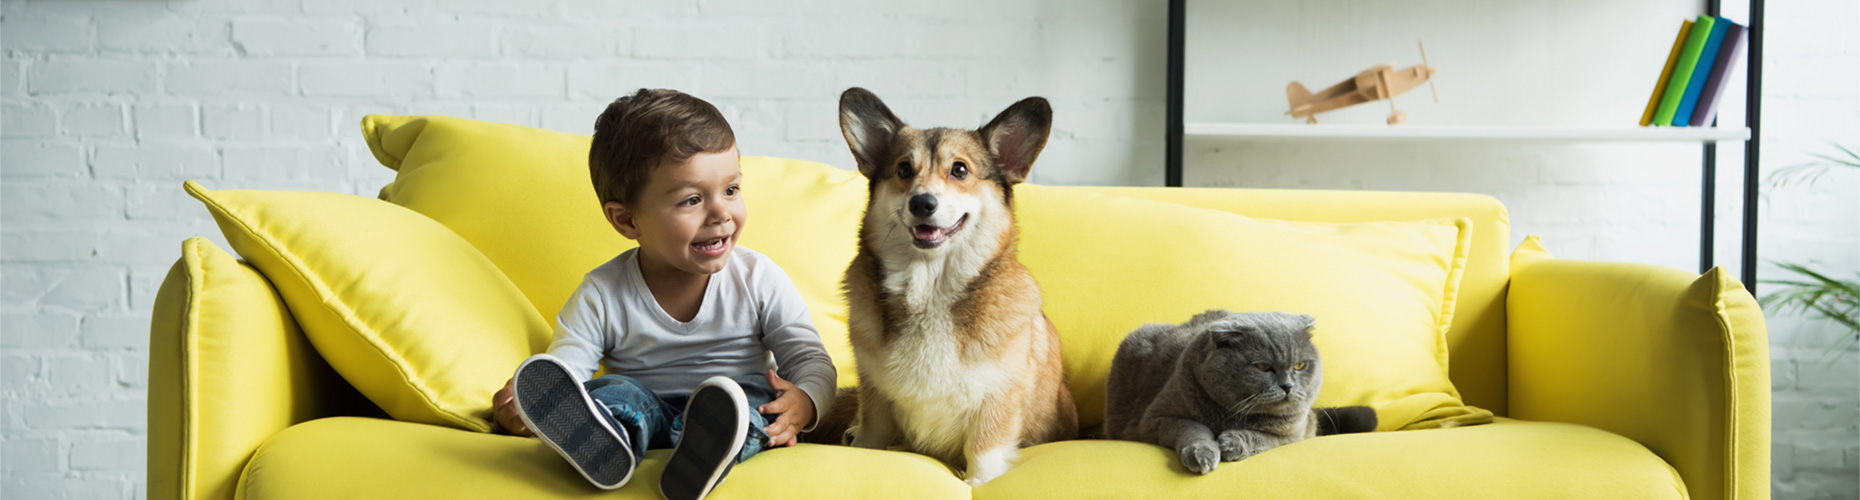 Small boy on a bright yellow couch with a small dog and grey cat